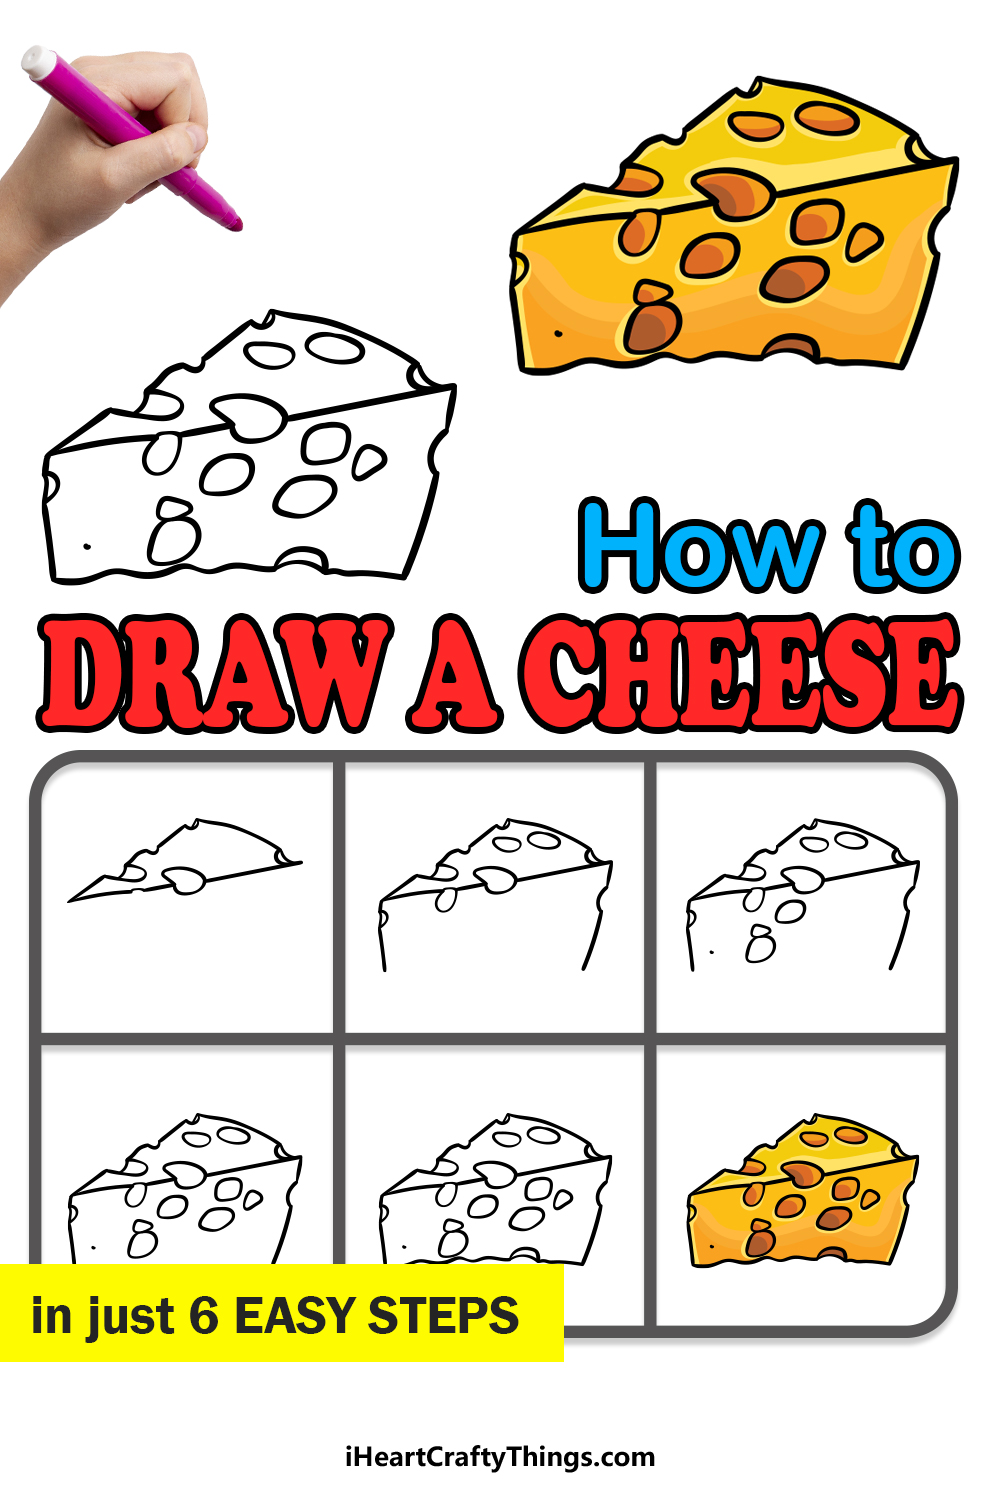 how to draw a cheese in 6 easy steps